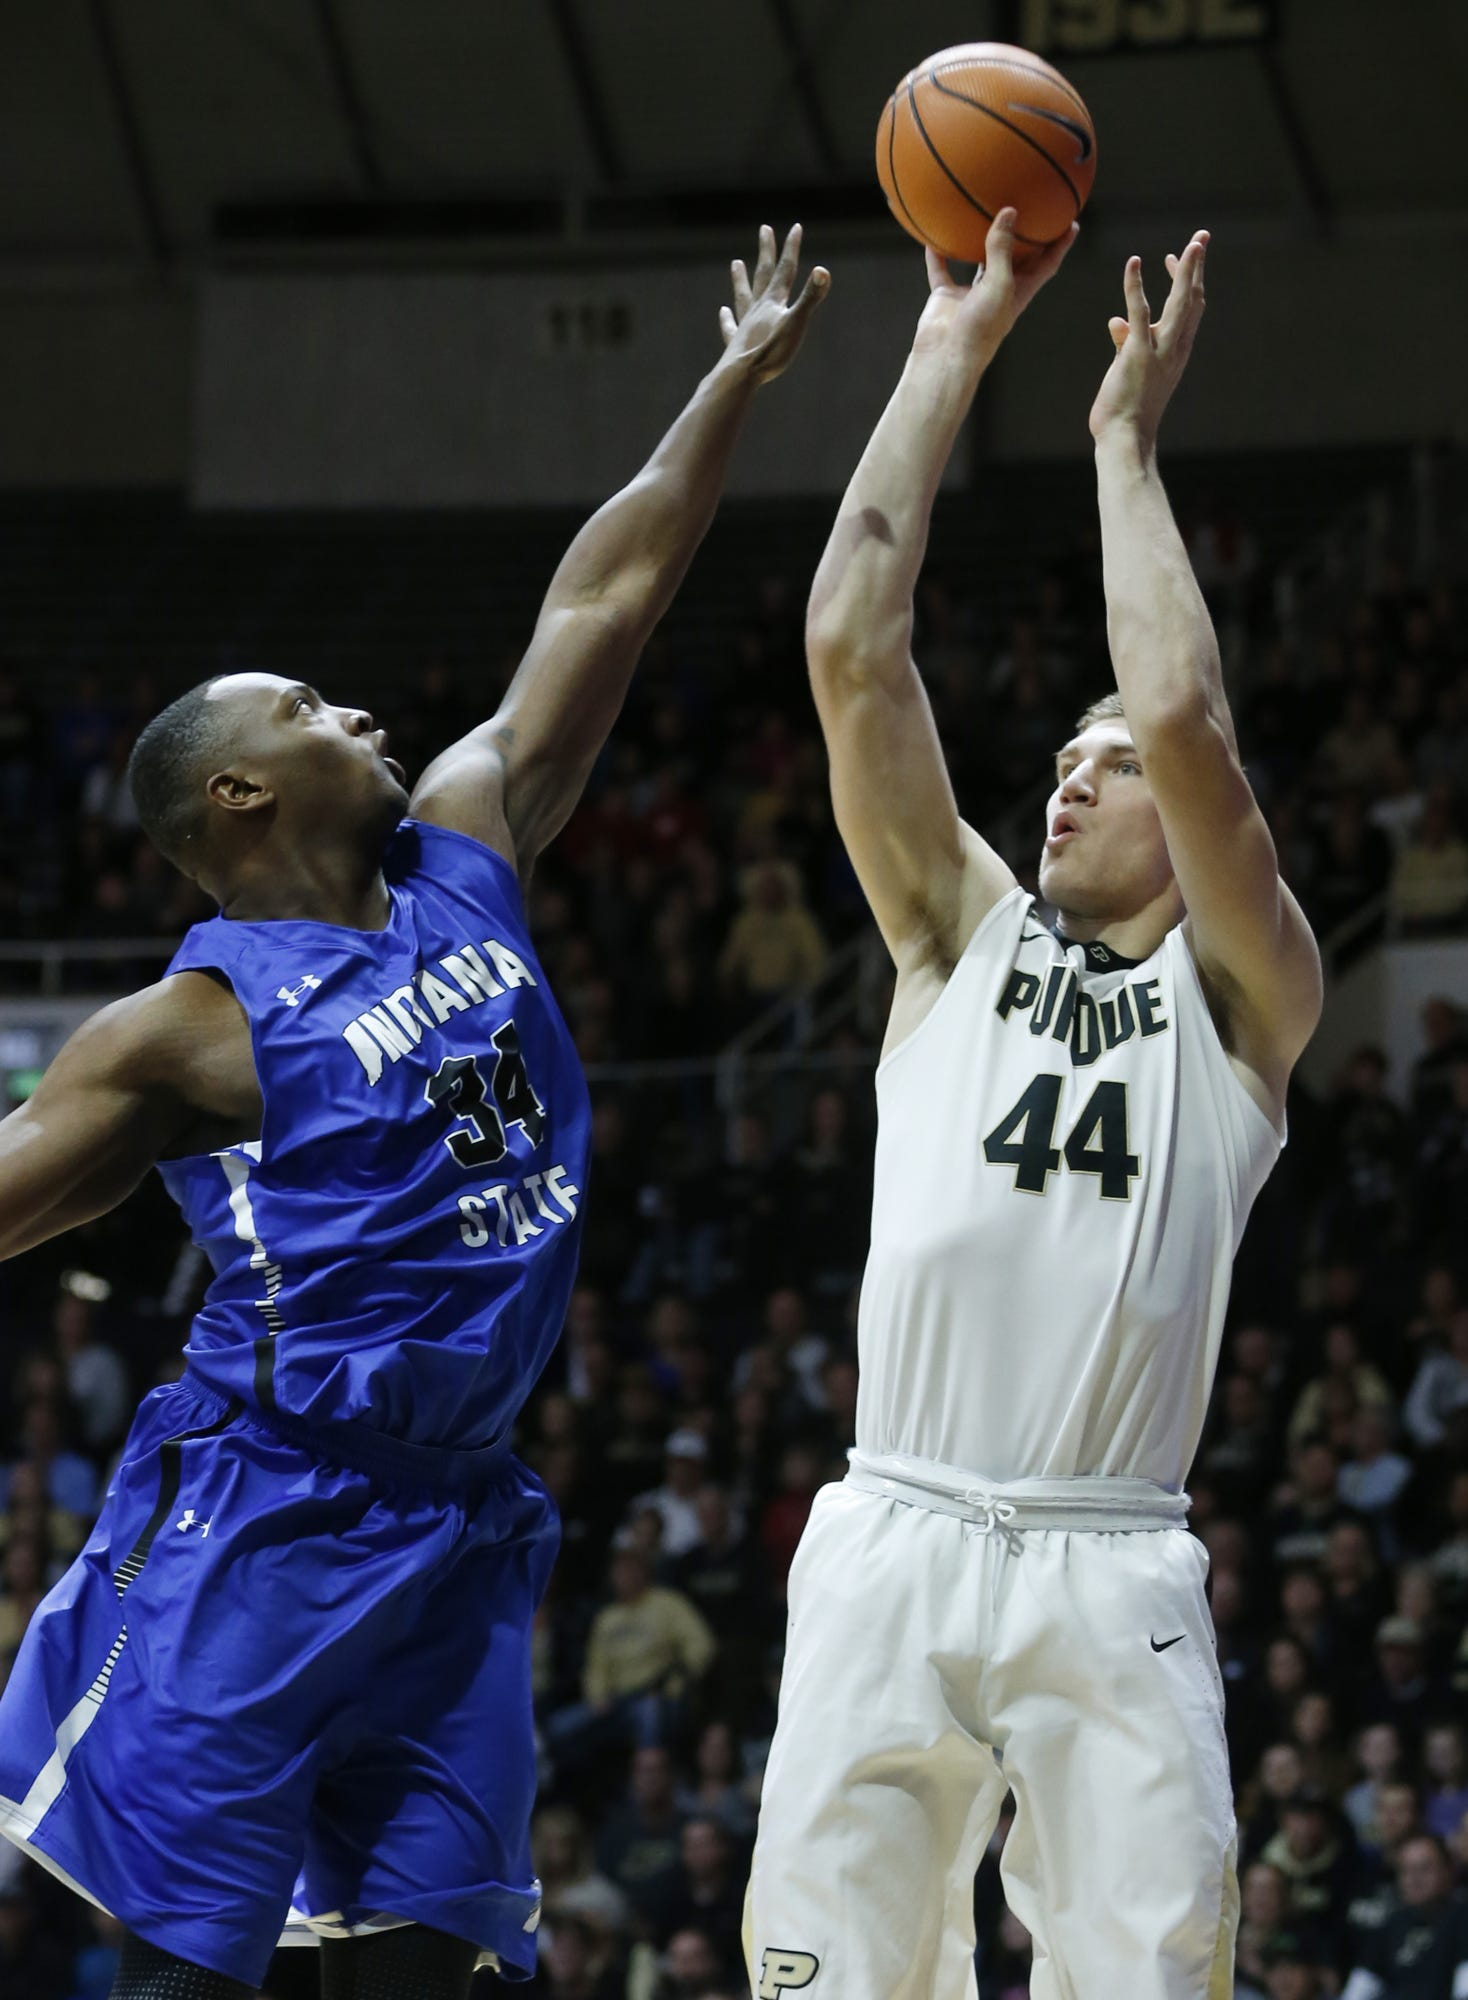 "Indiana State's Brandon Murphy of G.W. Carver tries to block a shot of Purdue's Isaac Haas of Hokes Bluff last season. After four years of college basketball, Murphy, known as ""Big Baby"" when he was at Carver, is now trying football at Memphis."